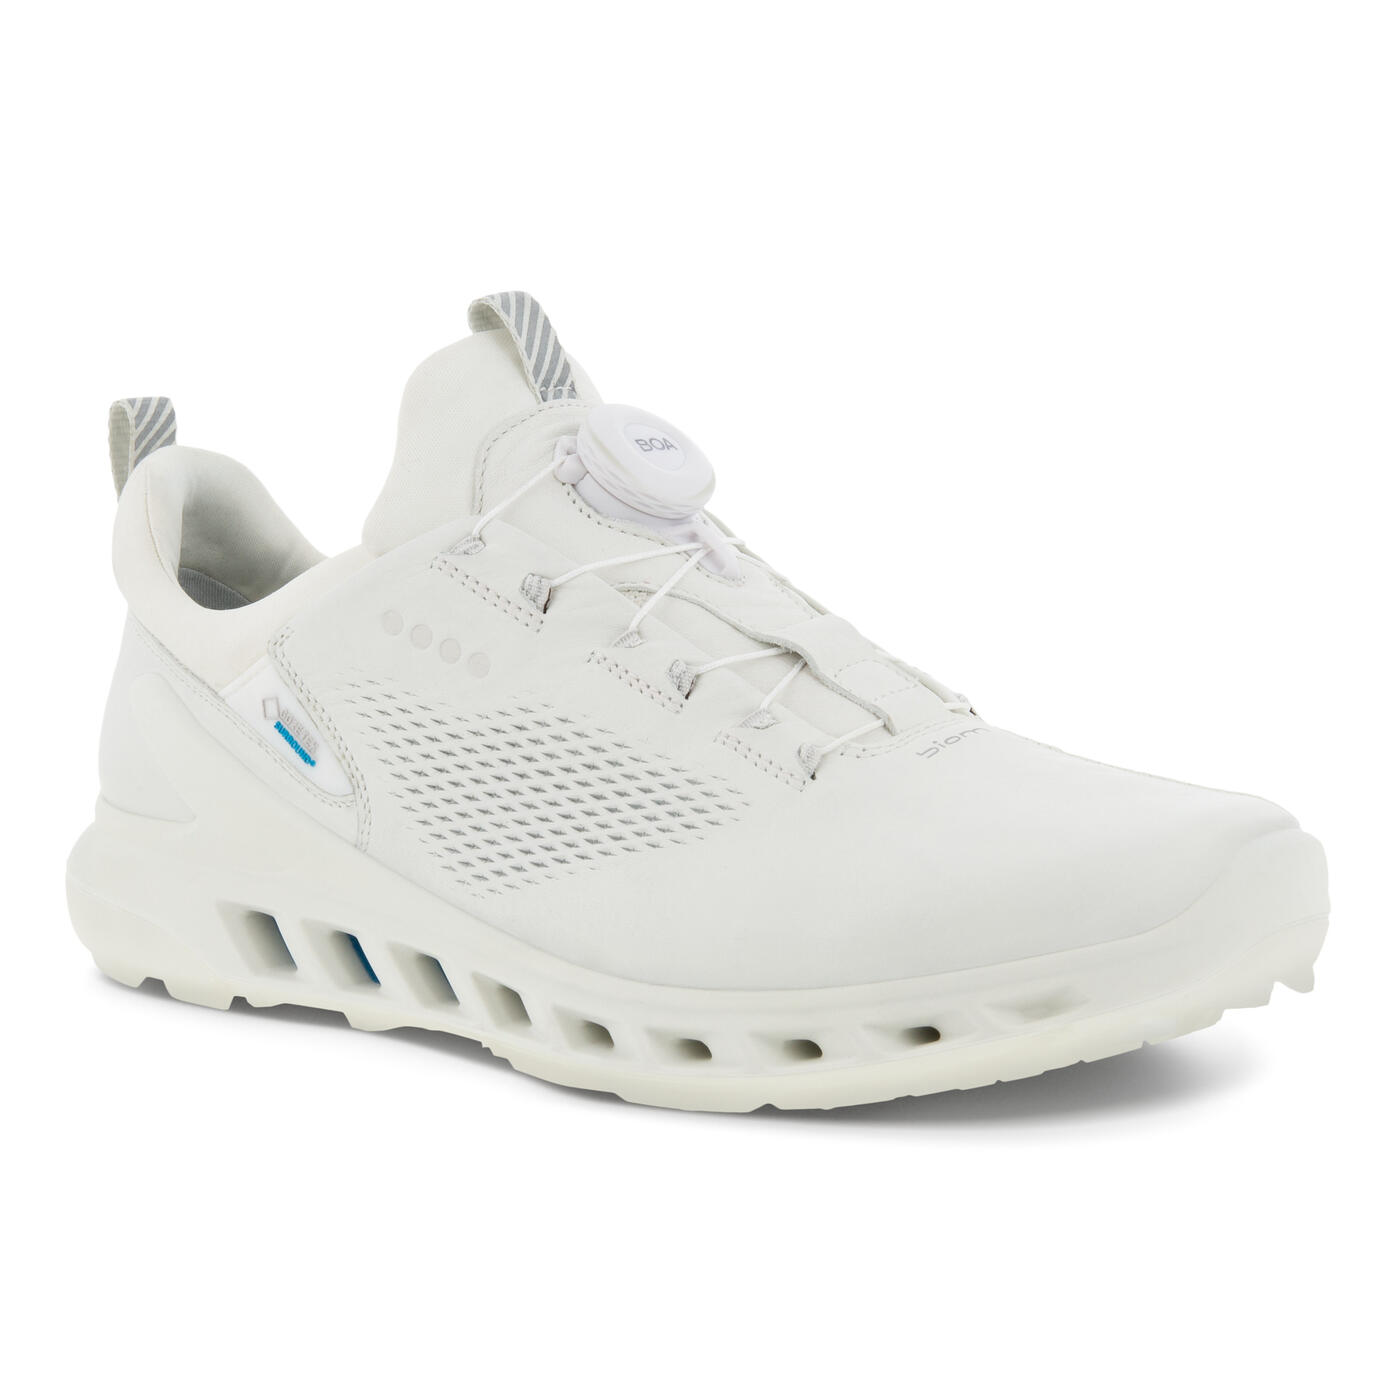 ECCO Men's Biom Cool Pro BOA Golf Shoe